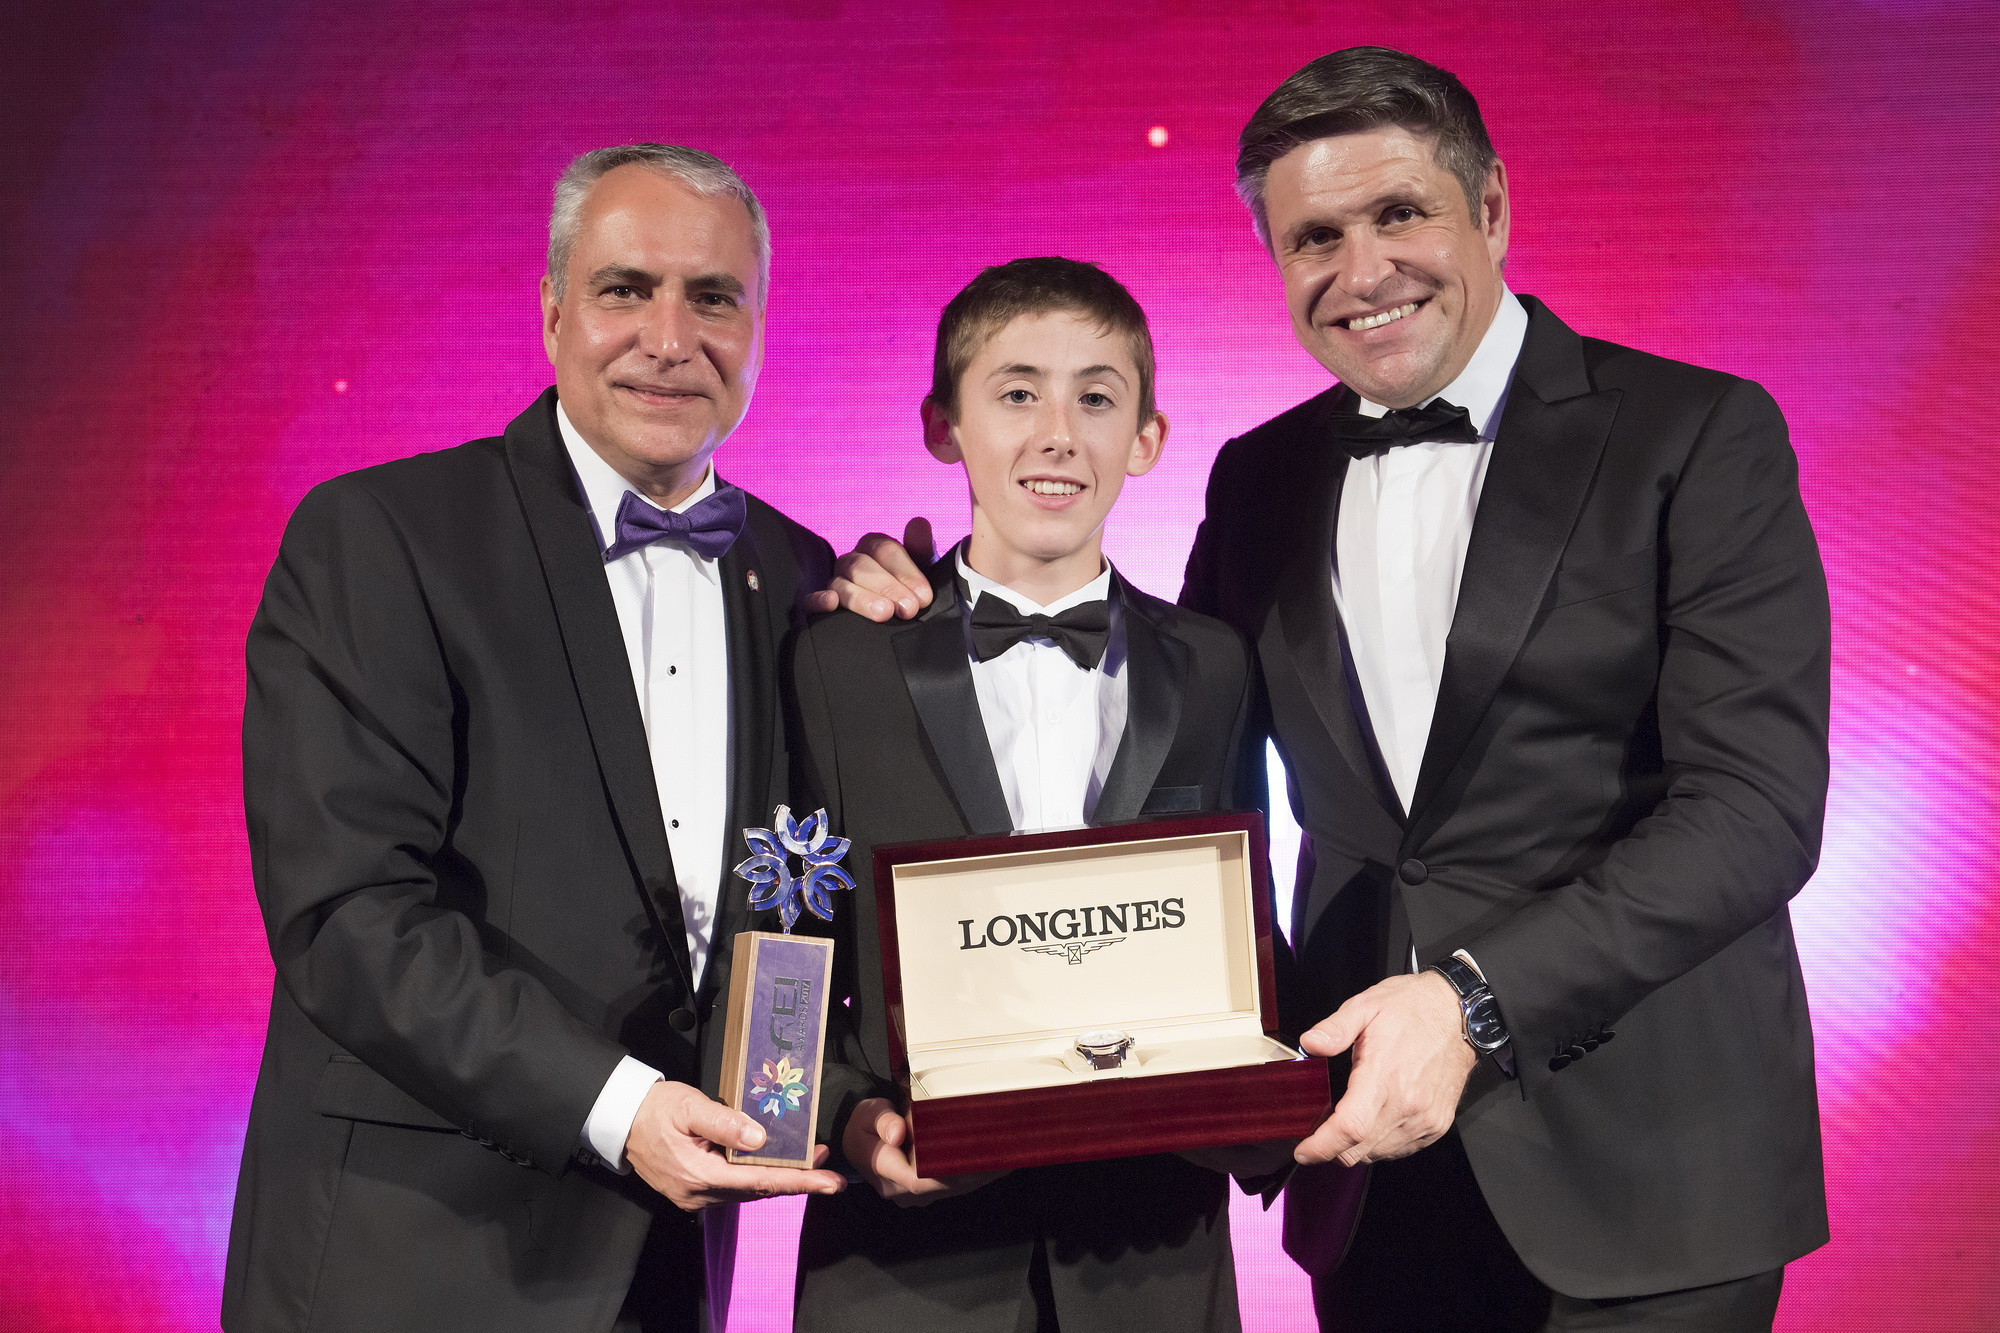 Ireland's Harry Allen, winner of the Longines Rising Star Award, pictured with FEI President Ingmar de Vos, left, and vice- president and head of international marketing Juan-Carlos Capelli at the FEI Awards in Montevideo ©FEI